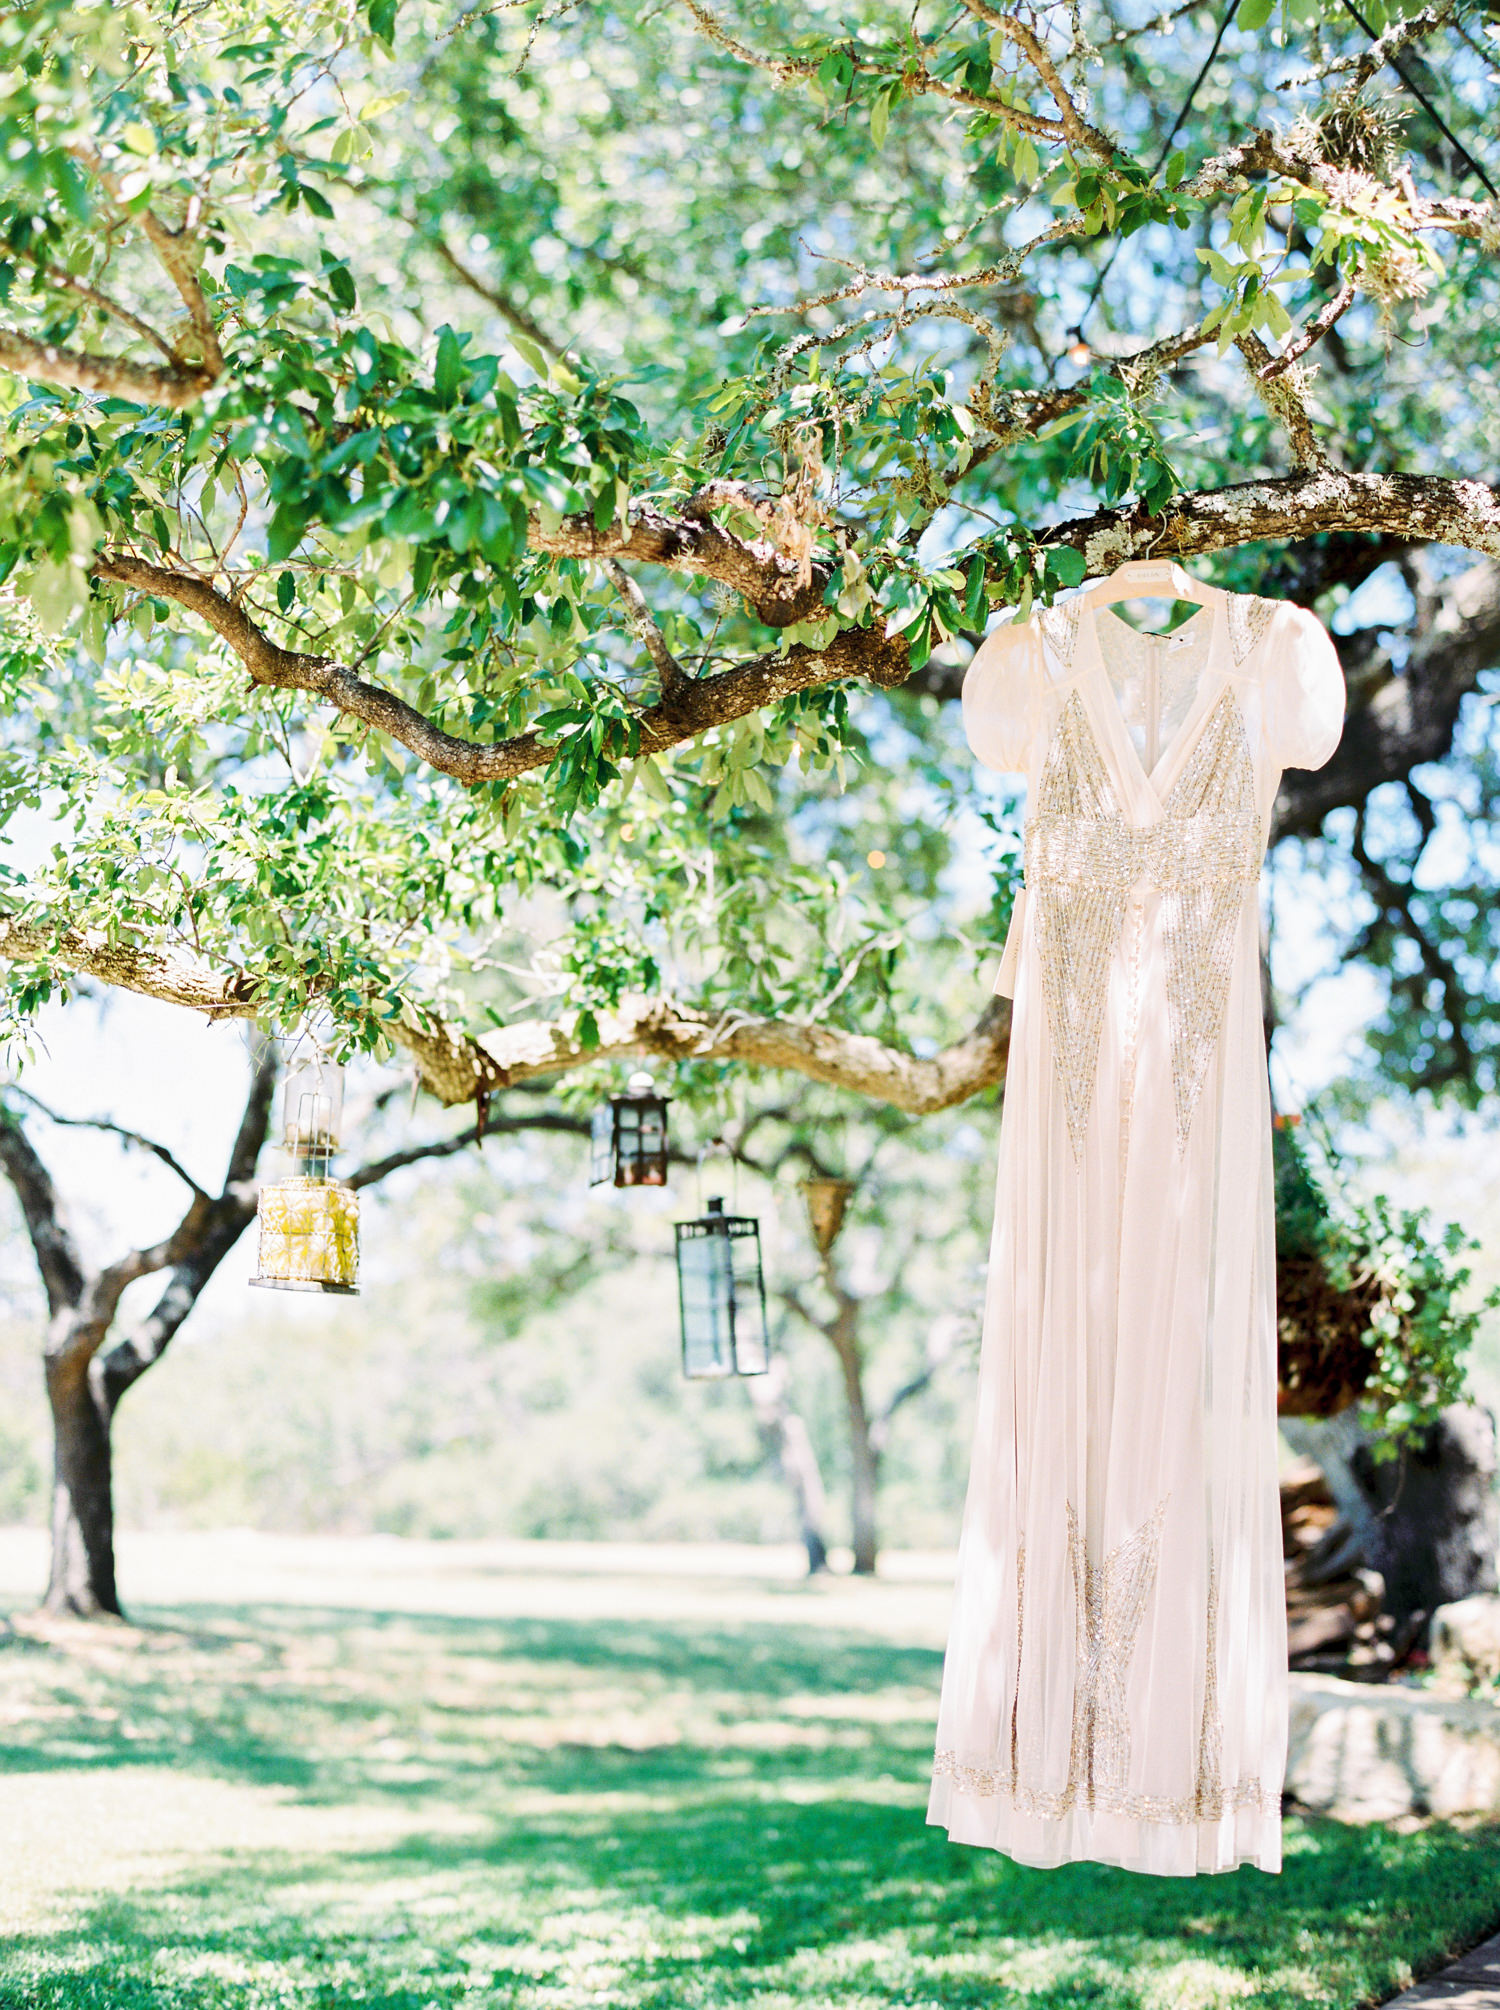 marion heurteboust boho diy wedding vista west ranch austin texas